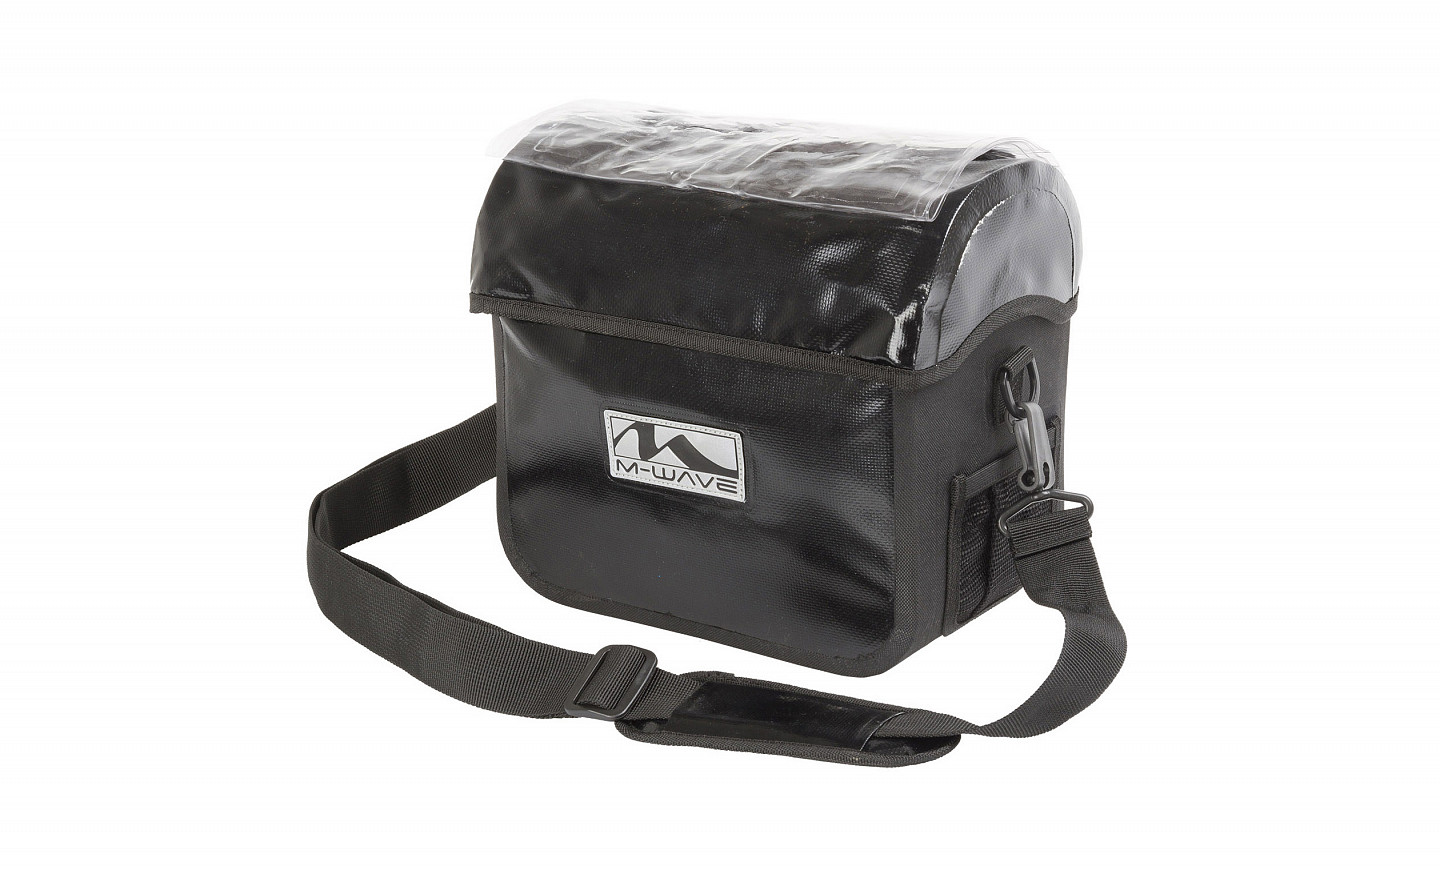 M-WAVE Ottawa handlebar bag